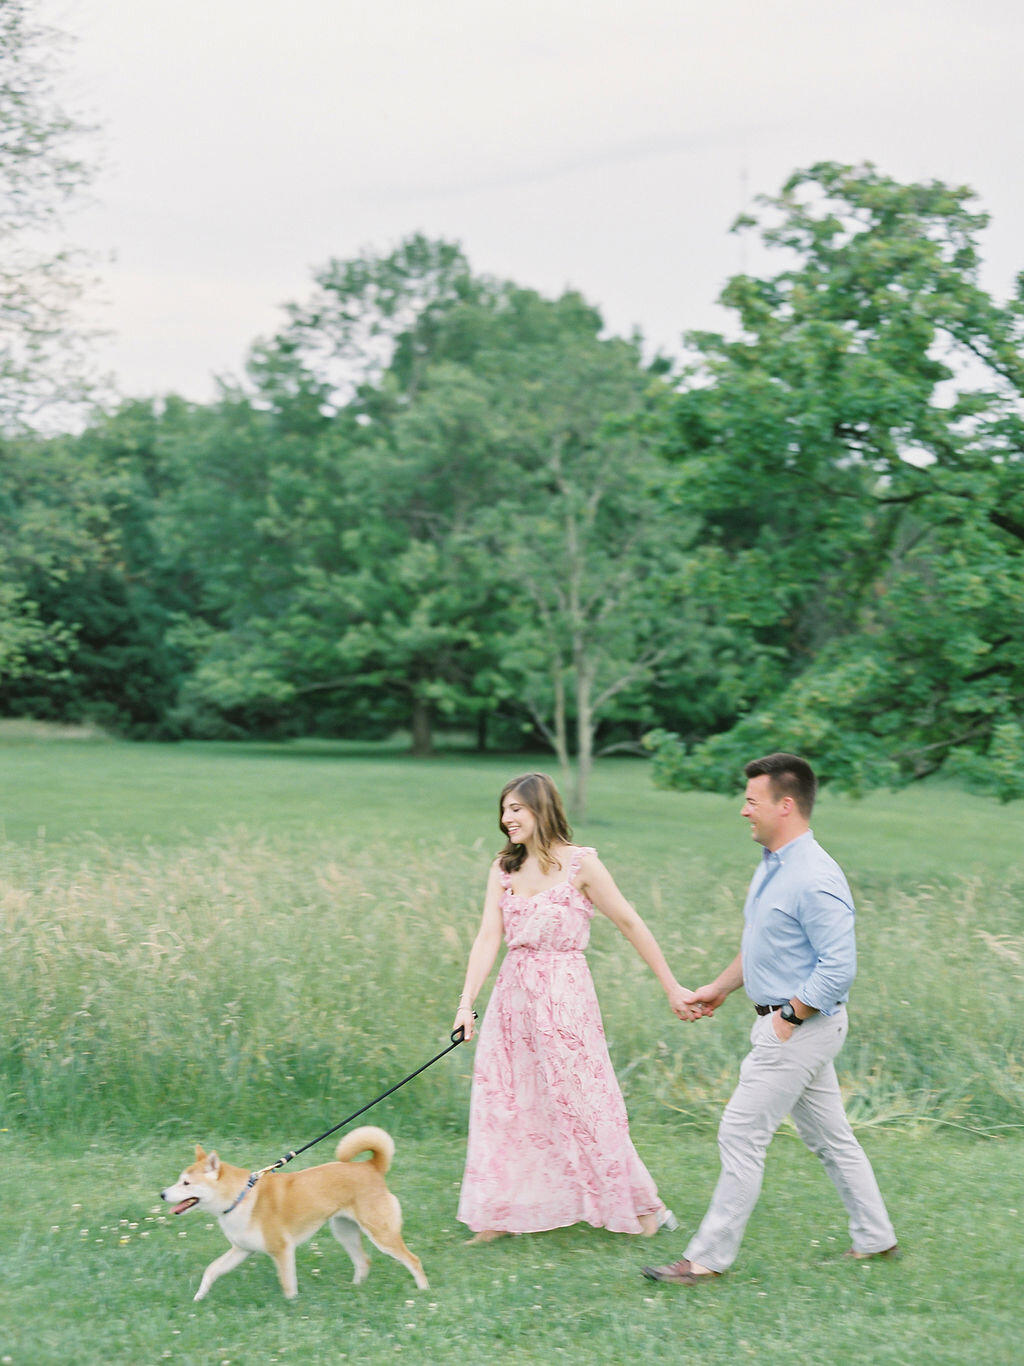 Cylburn Arboretum and Tribeca Engagement Photography Session by Vicki Grafton on East Made Co Baltimore Wedding Planner Blog-78.jpg